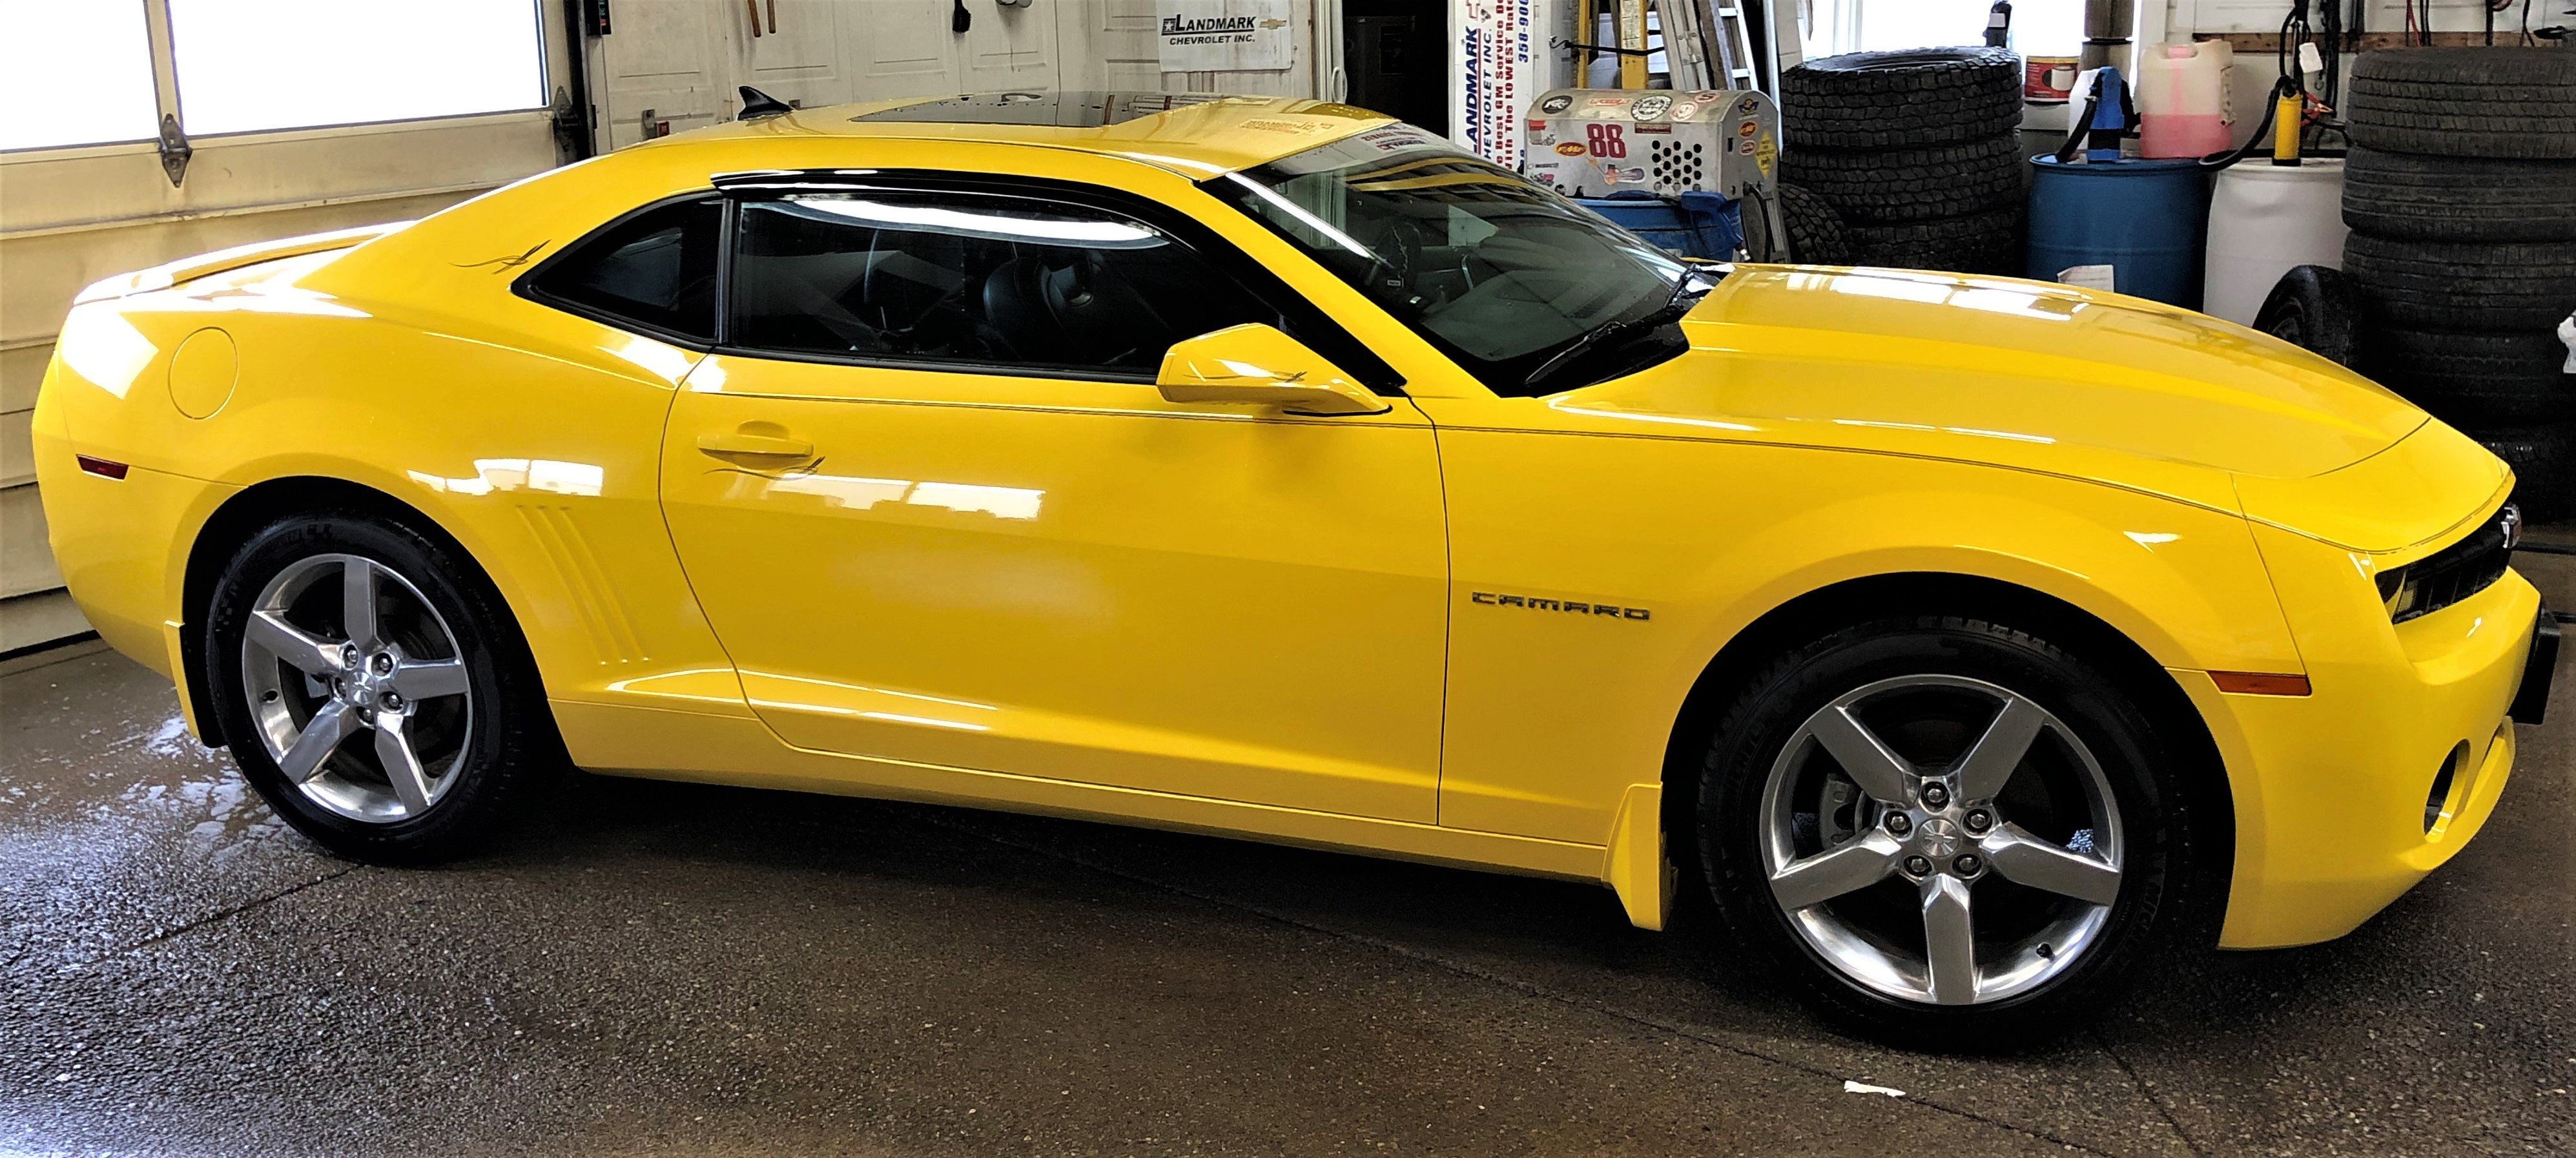 2011 Chevrolet Camaro 2LT Car